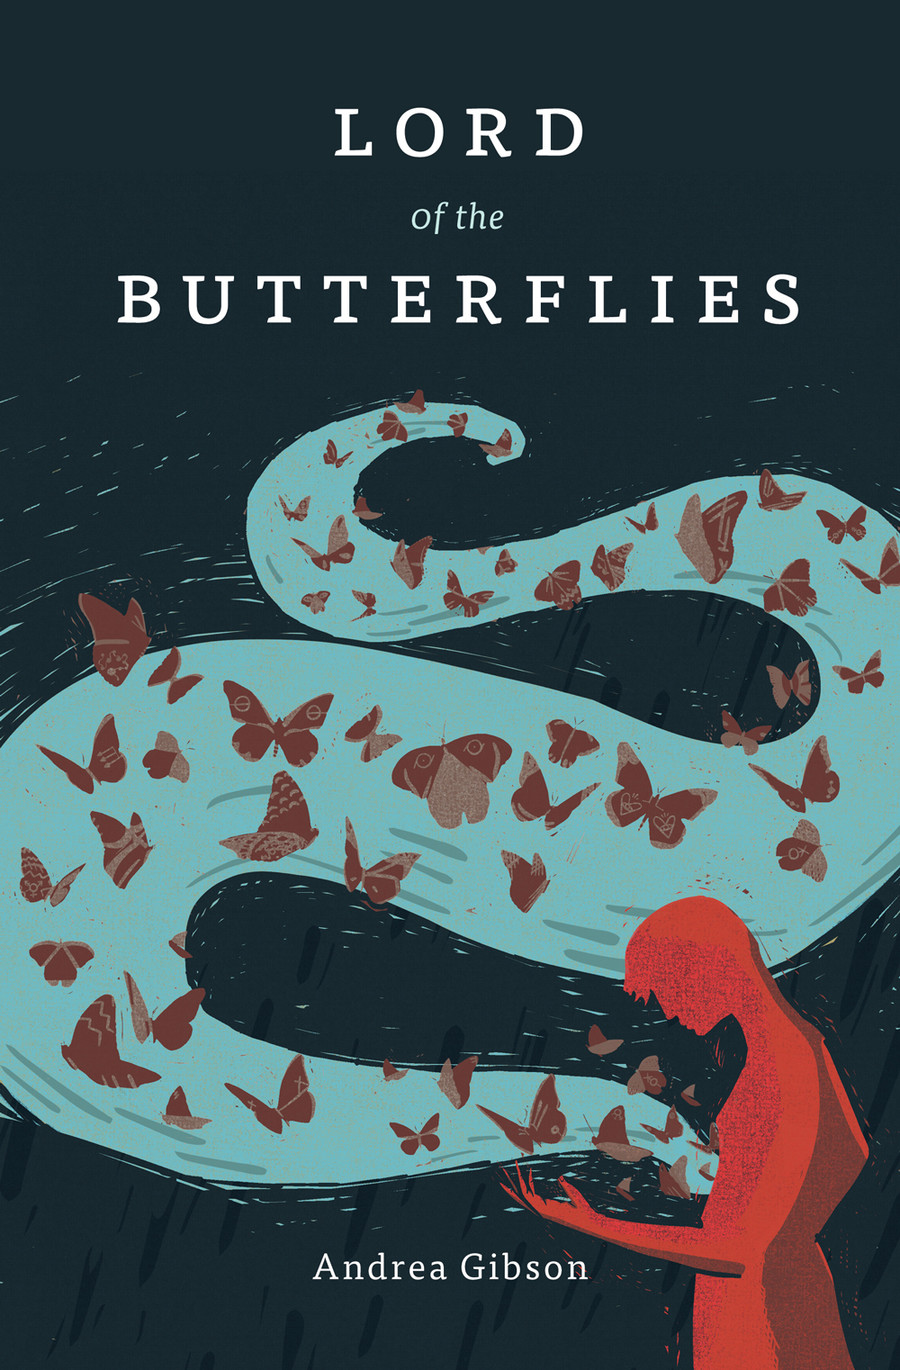 Cover Lord of the Butterflies by Andrea Gibson with a blue swirl and butterflies